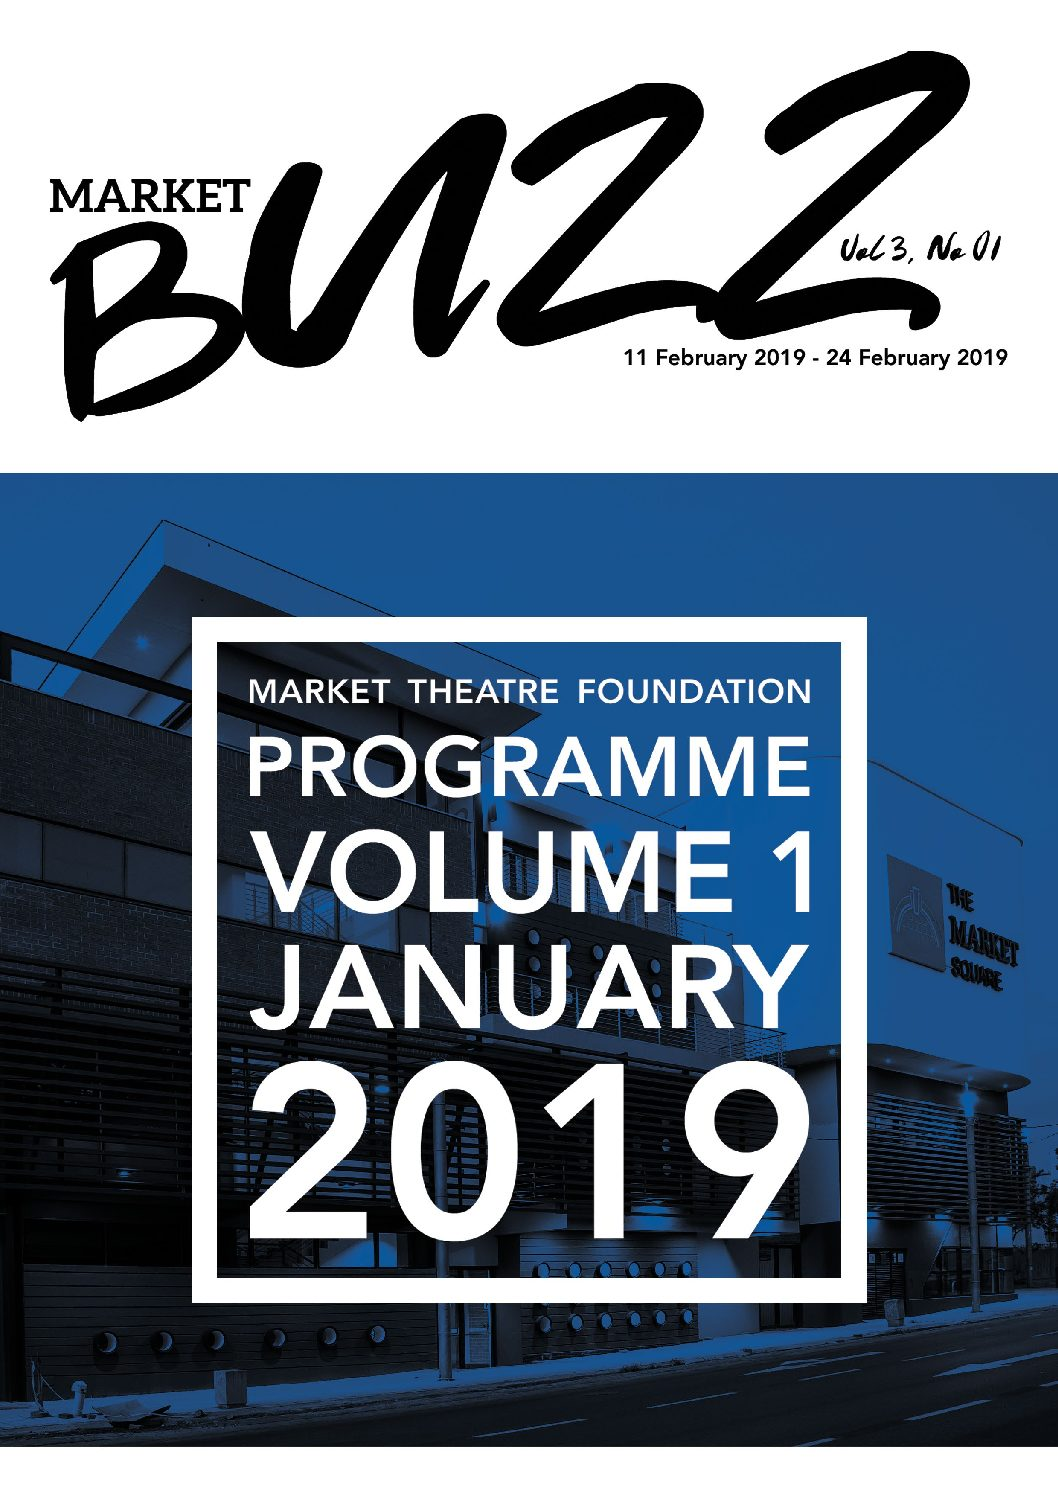 market-buzz-v3n01-website